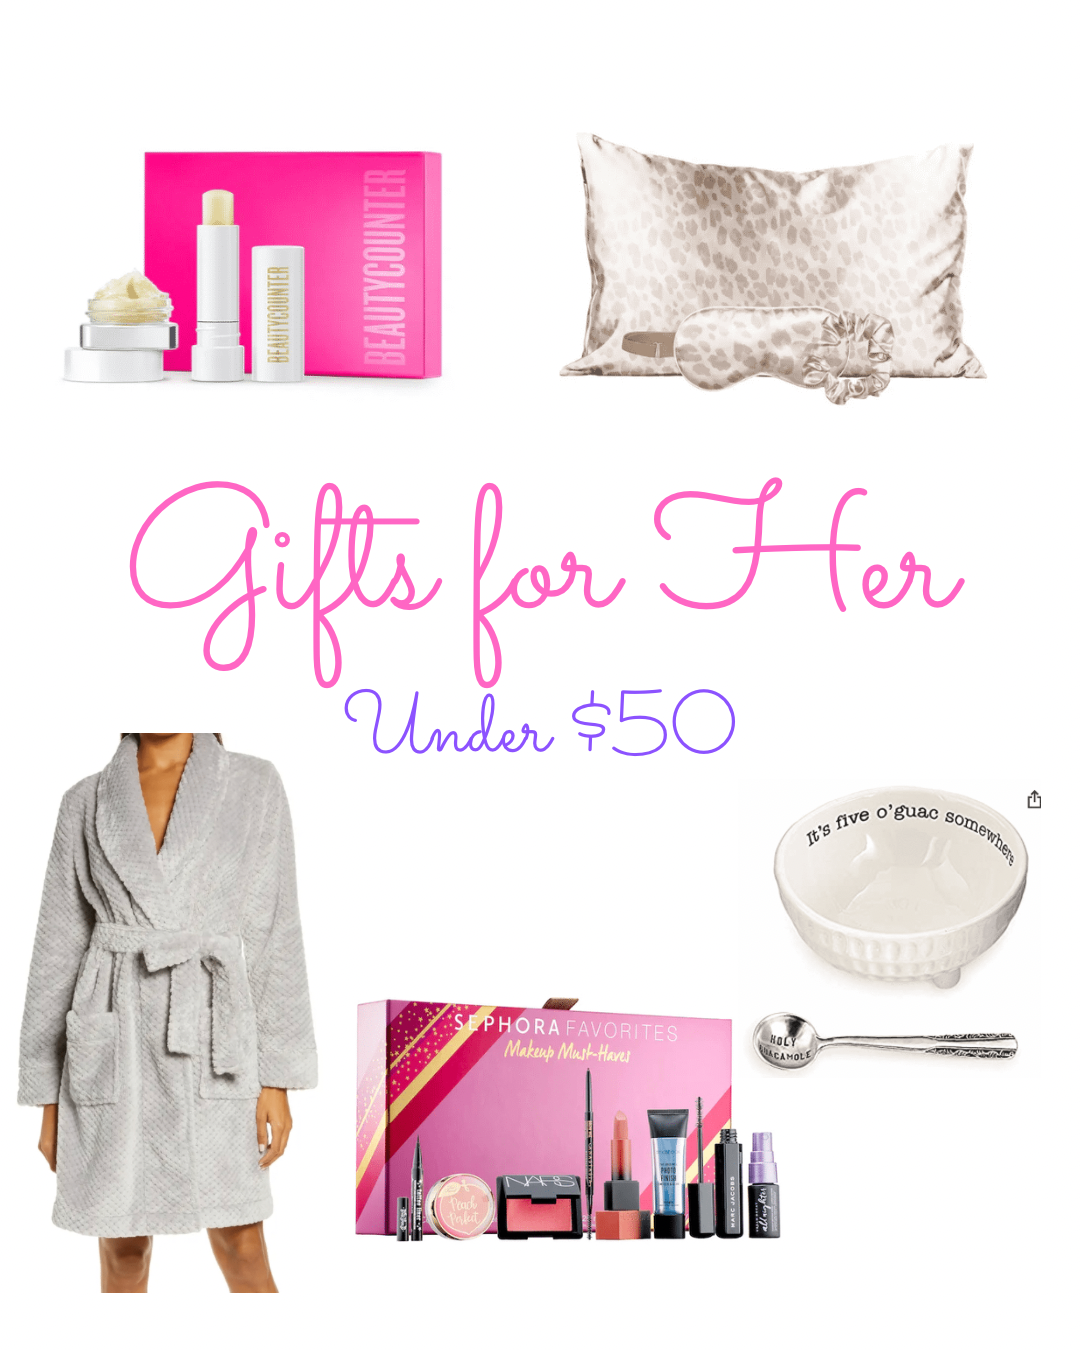 Fashion blogger Fabulously Overdressed shares her gift guide for her under $50